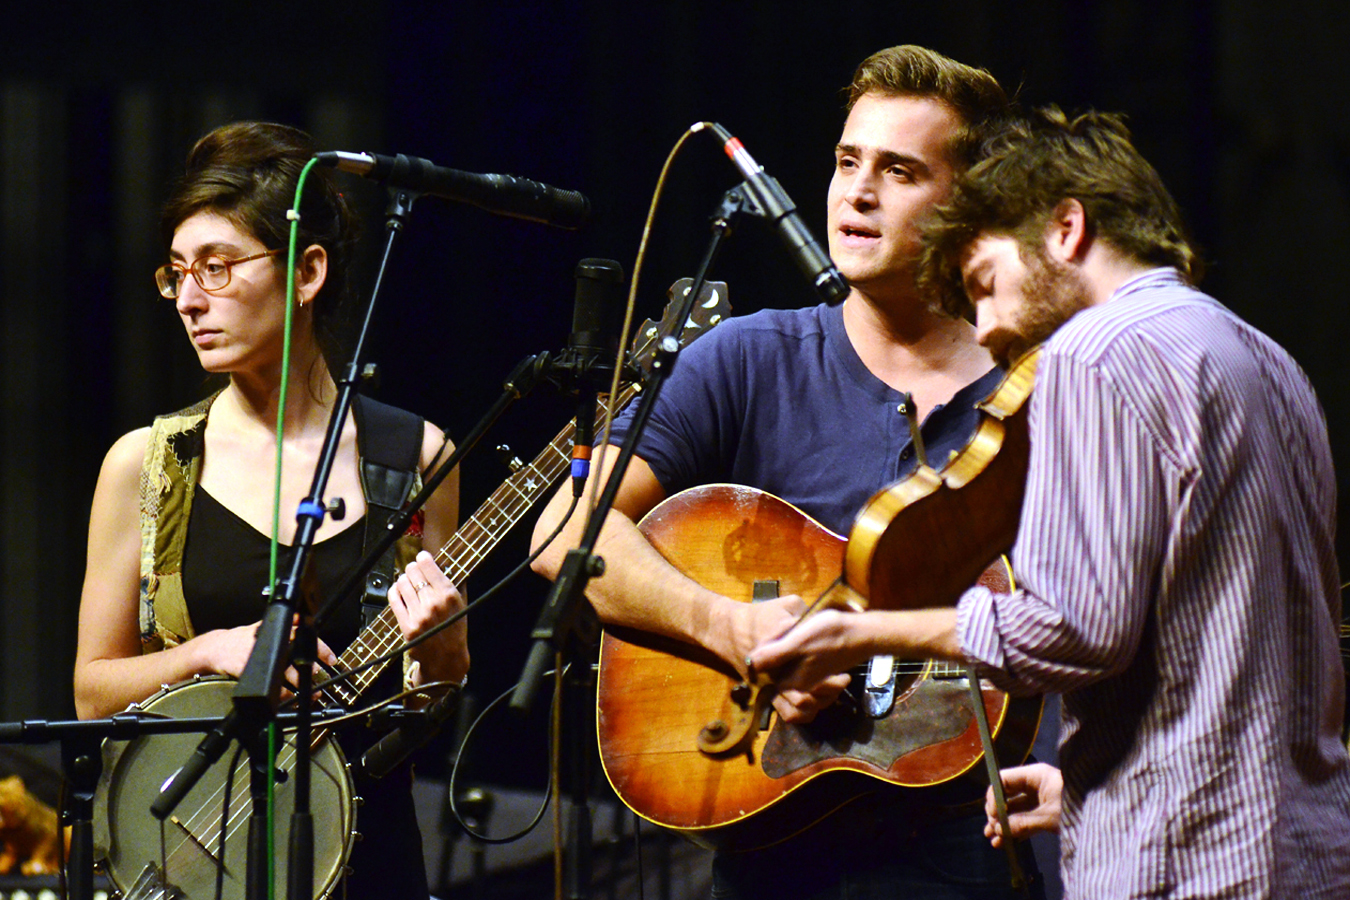 After putting in their time on the road in a battered van, the members of Spirit Family Reunion recently secured a spot at the Newport Folk Festival.